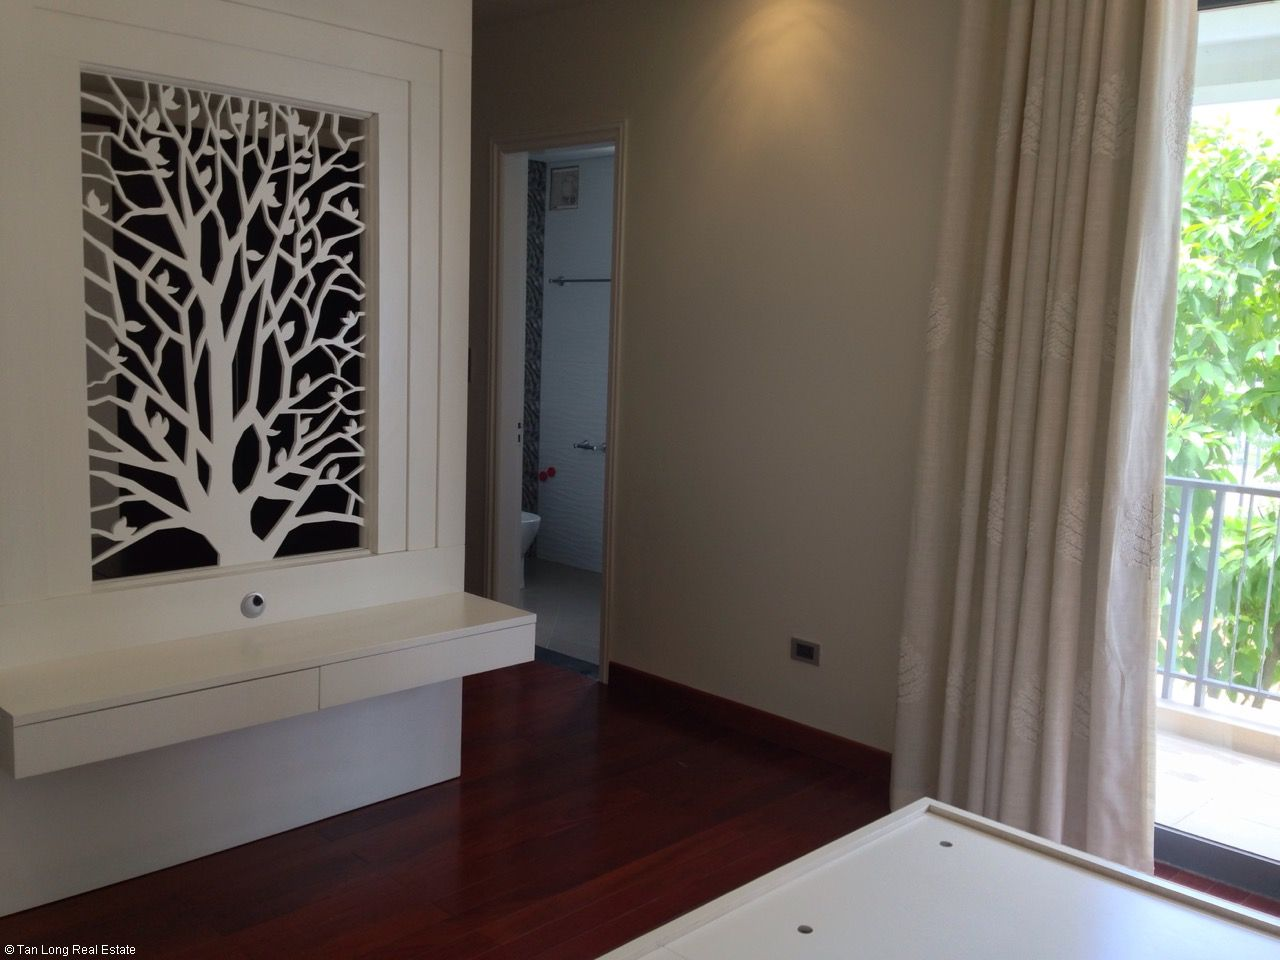 Furnished 05 bedrooms house for rent in Gamuda, Nguyen Xien street, Hoang Mai district. 1